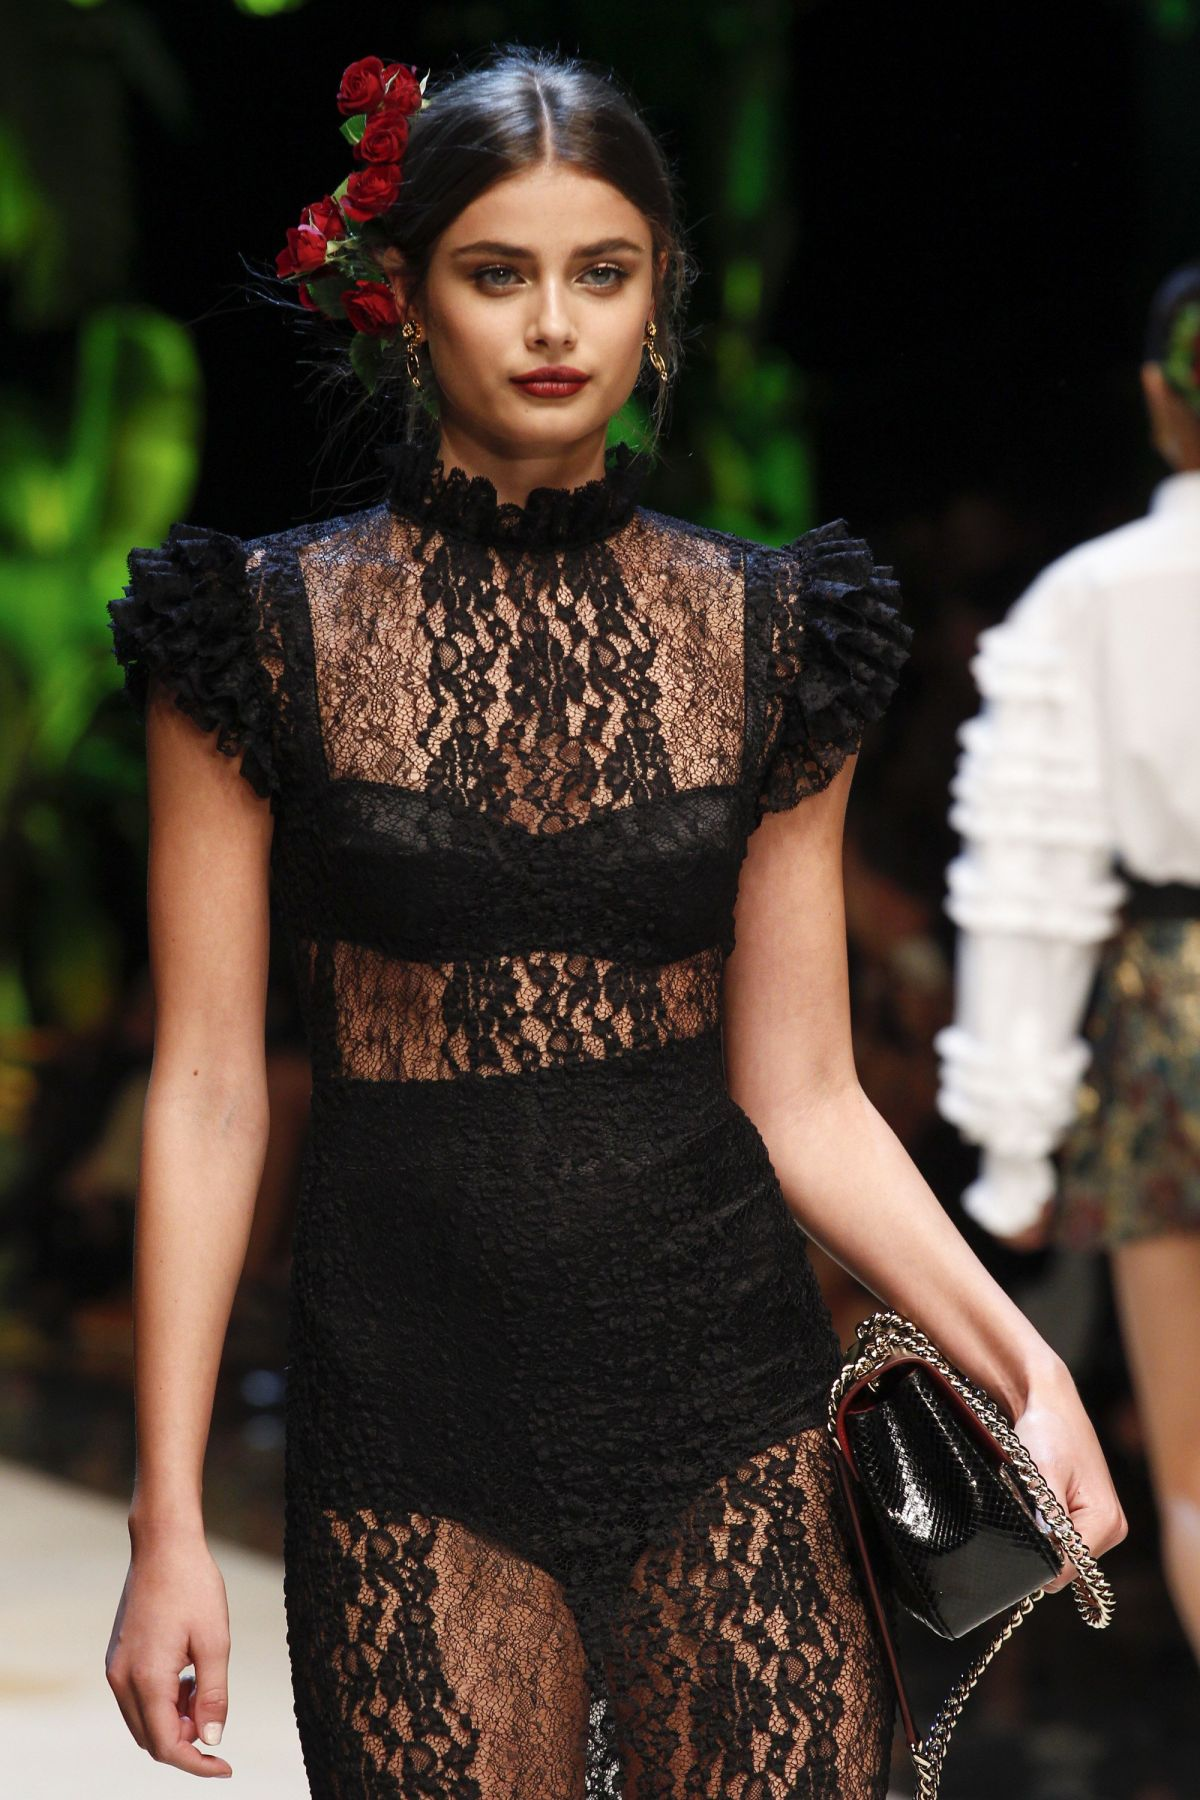 | Projets de LeviSmith | - Page 2 Taylor-hill-on-the-runway-at-dolce-gabbana-fashion-show-at-milan-fashion-week-09-25-2016_1